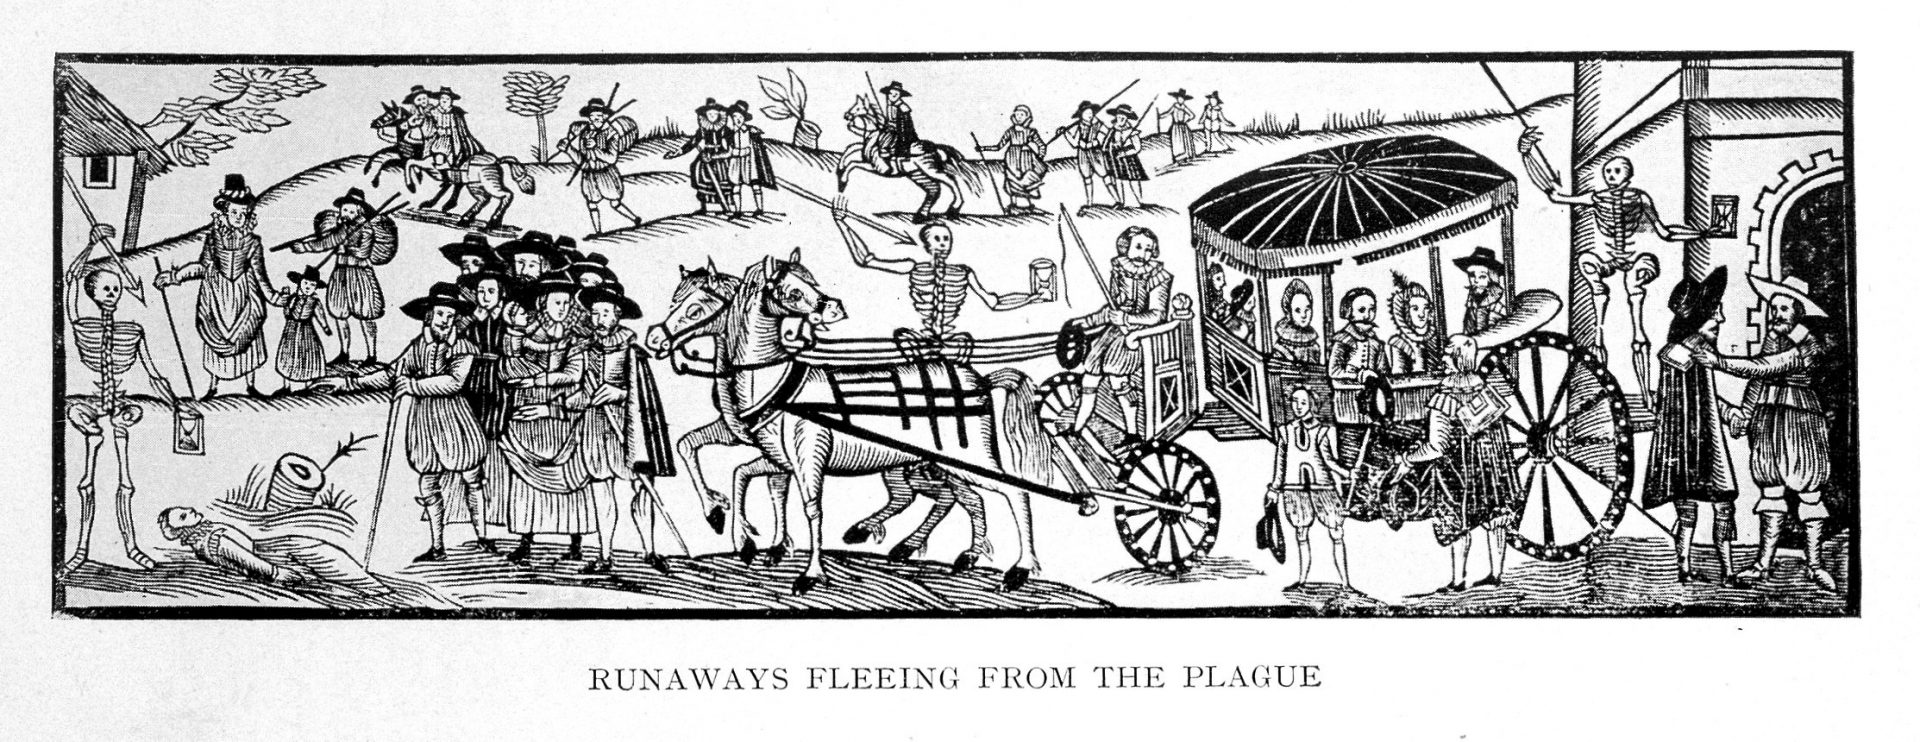 Print by H Goson of Oxford running from the plague in 1630